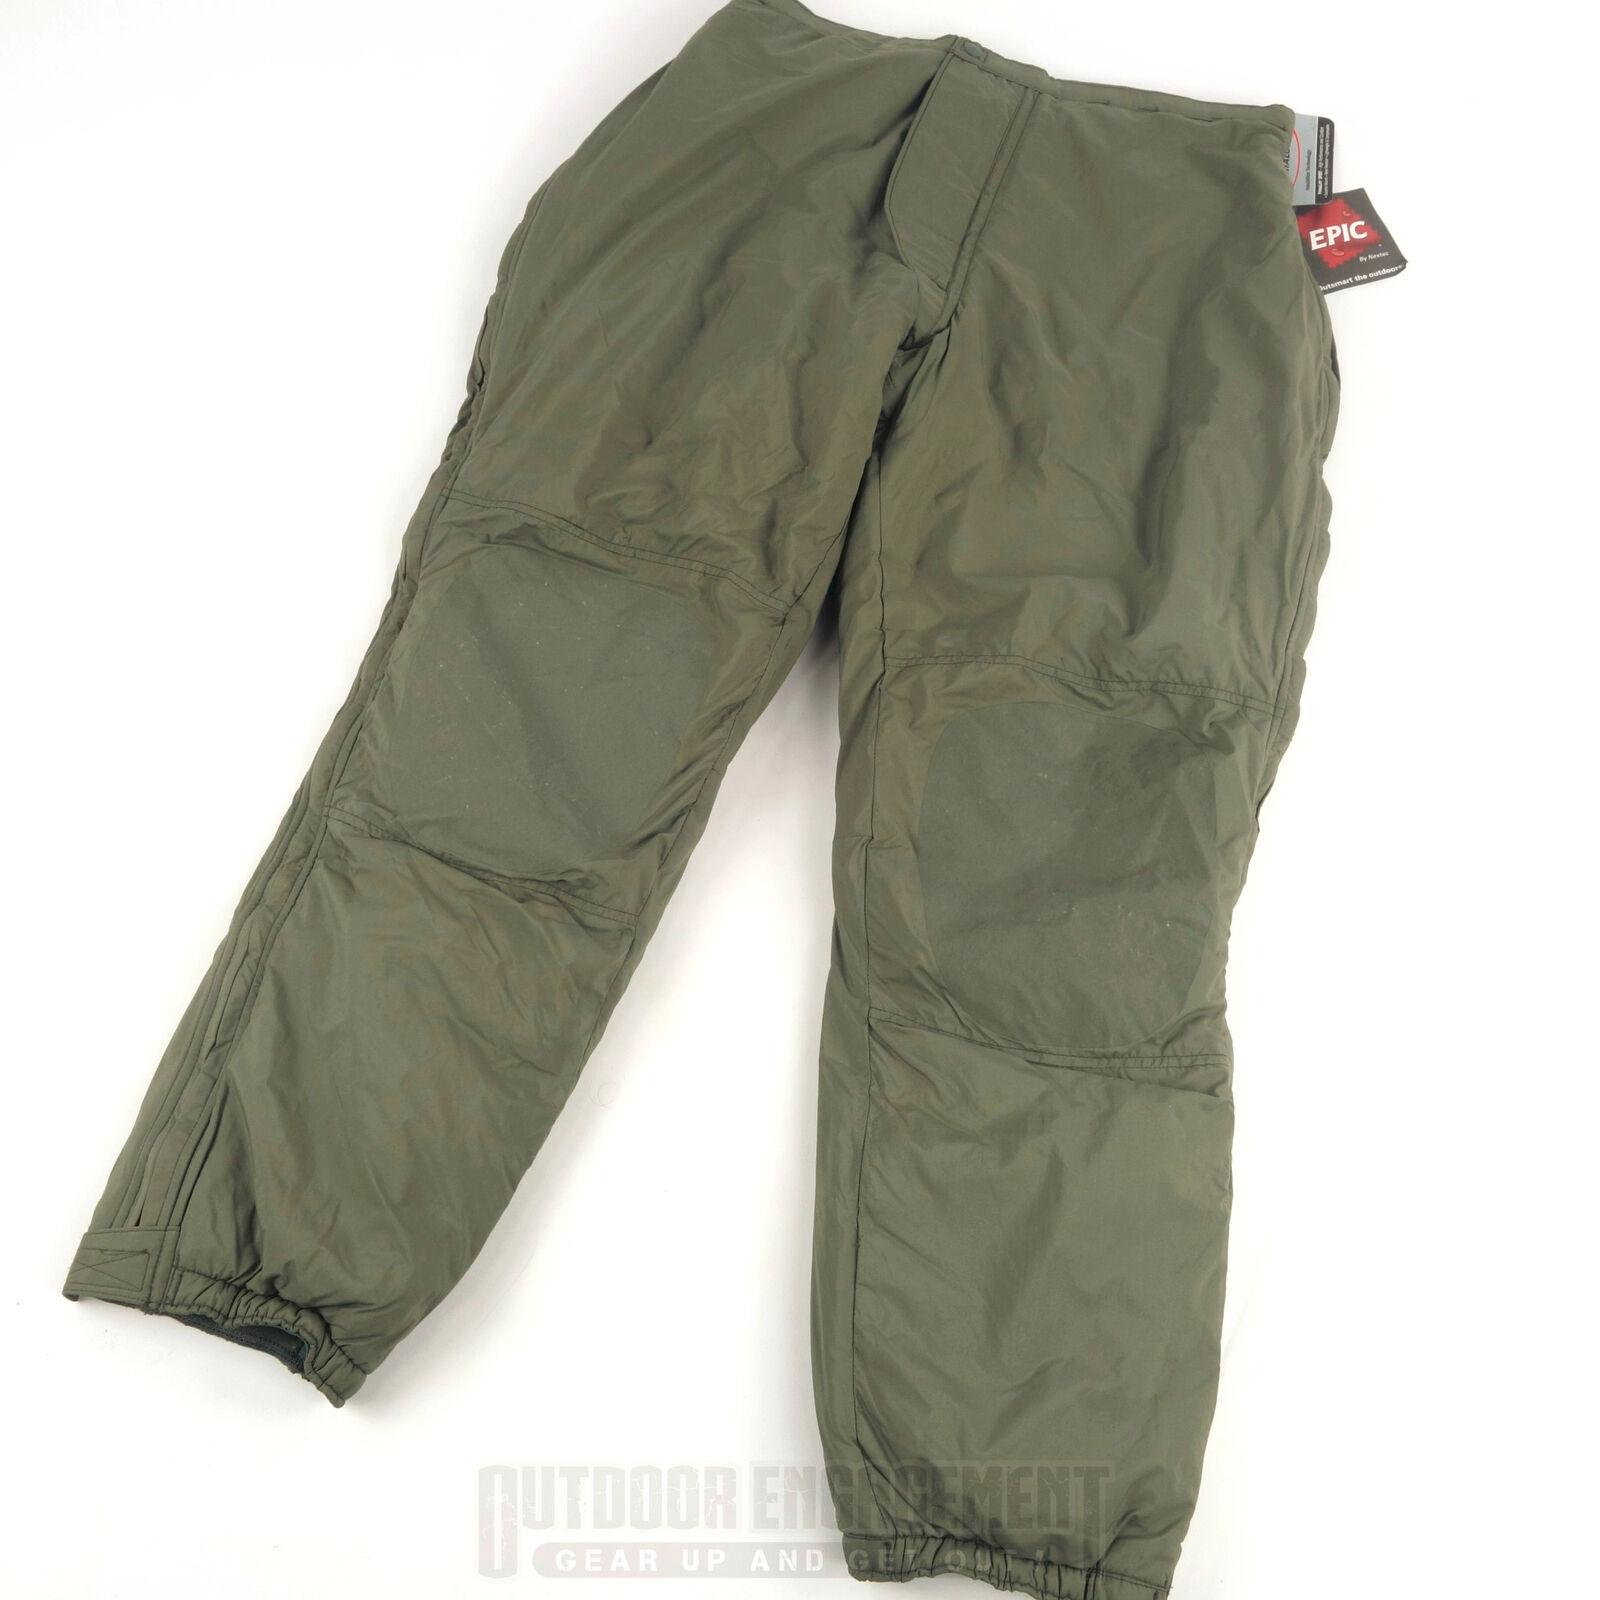 Halys Sekri Epic Primaloft  Insulative PCU Level 7 Pants Shell Pant L7 for -40F  order now with big discount & free delivery